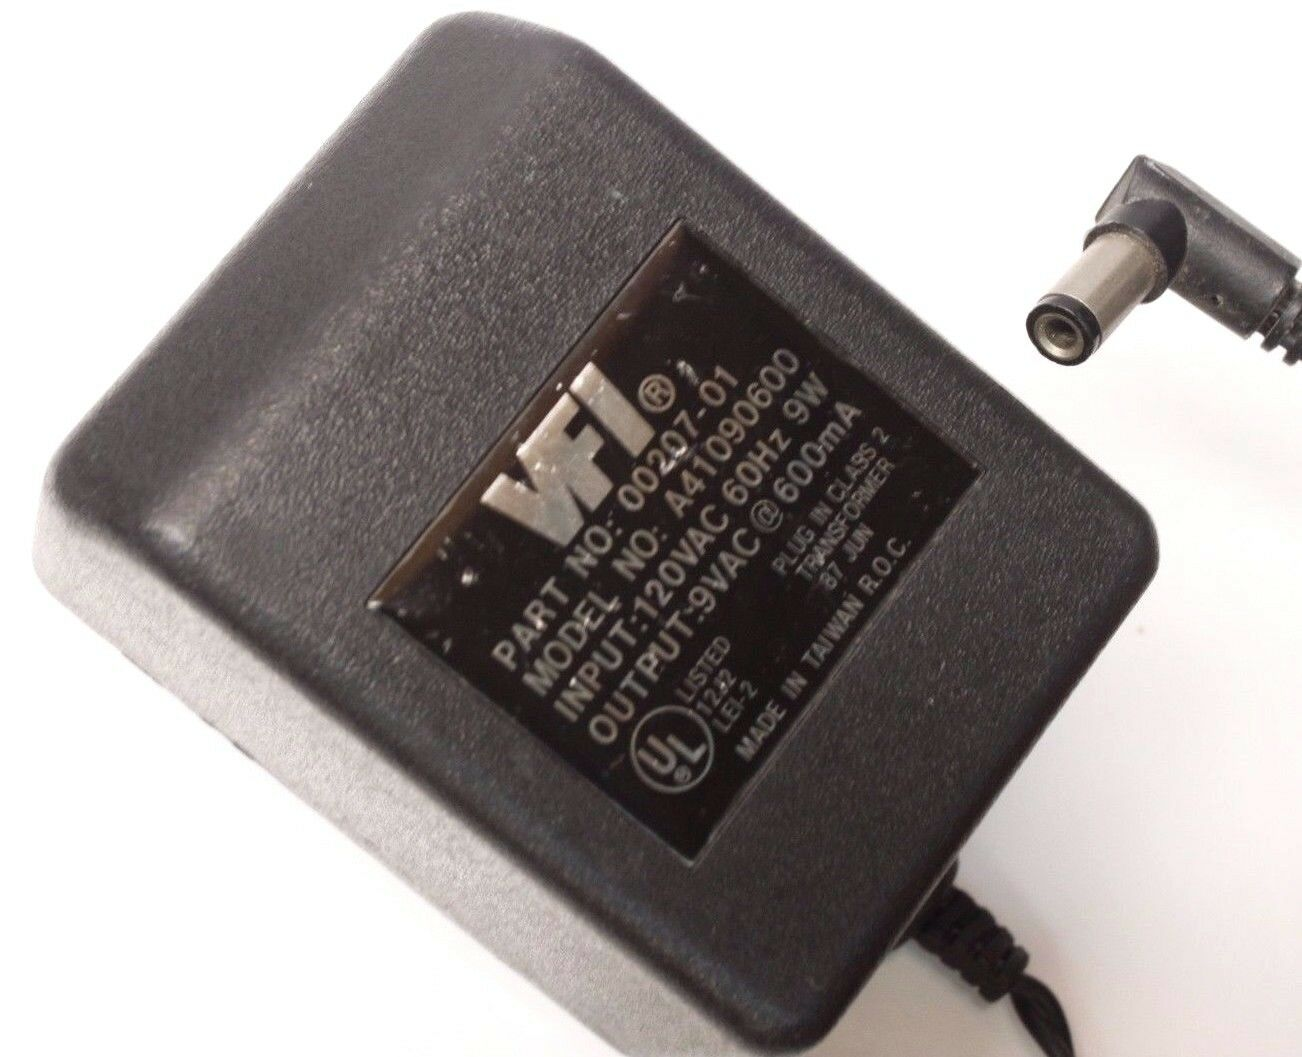 VFI A41090600 AC DC Power Supply Adapter Charger Output 9V 600mA